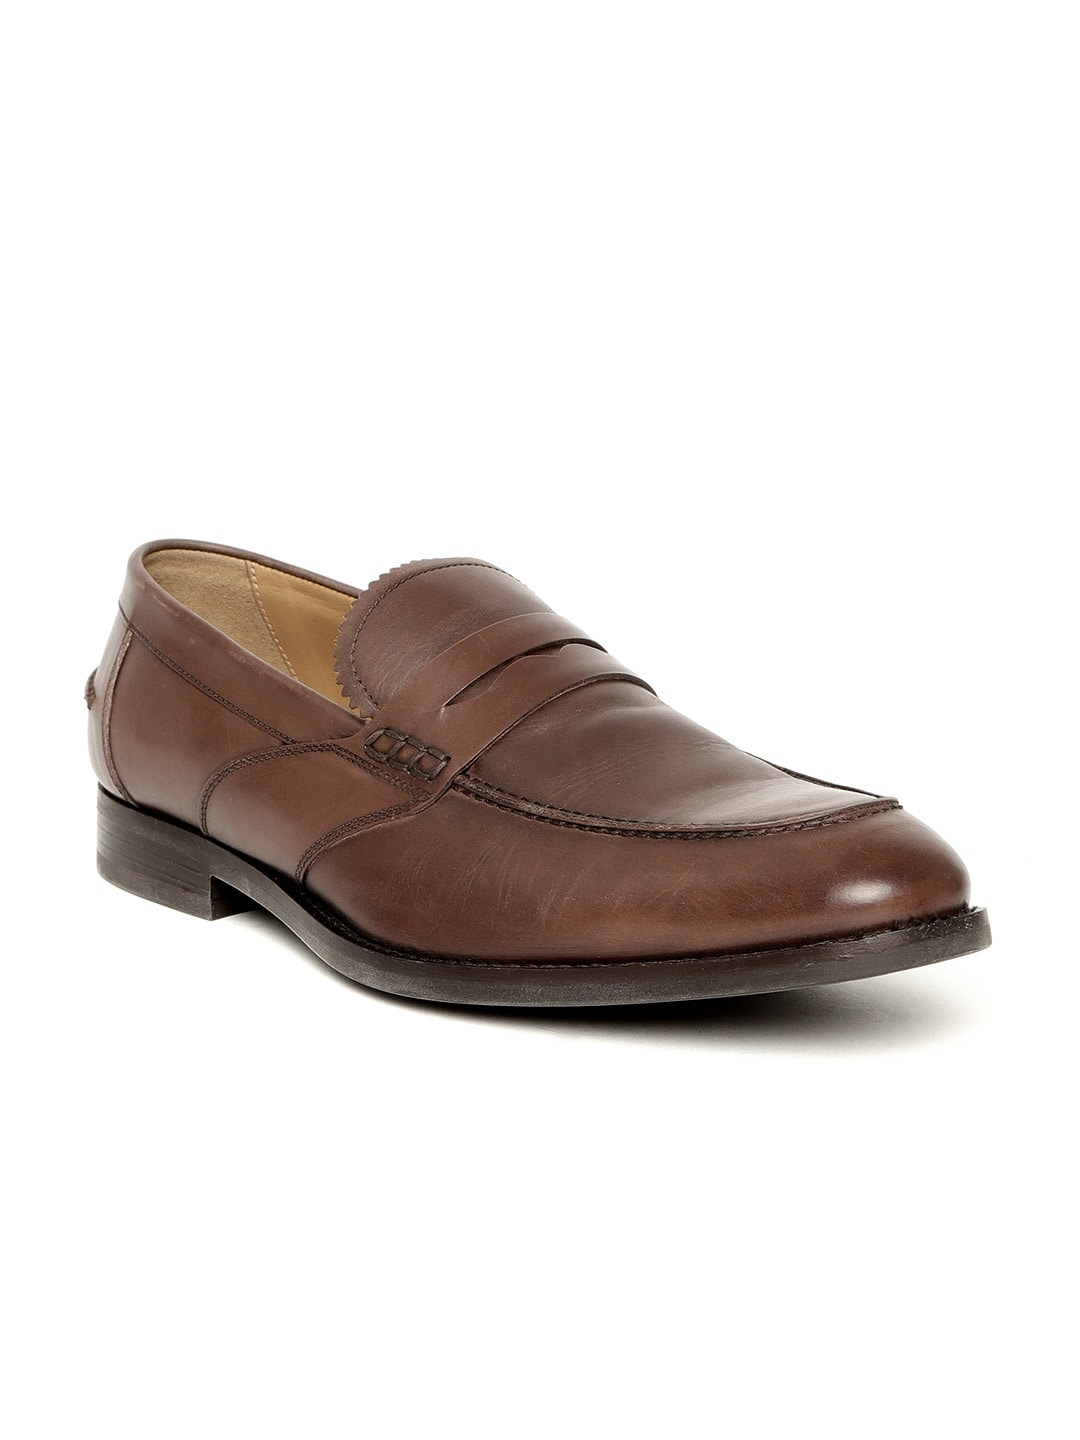 bea59e29092 Geox Men Brown Leather Semiformal Penny Loafers